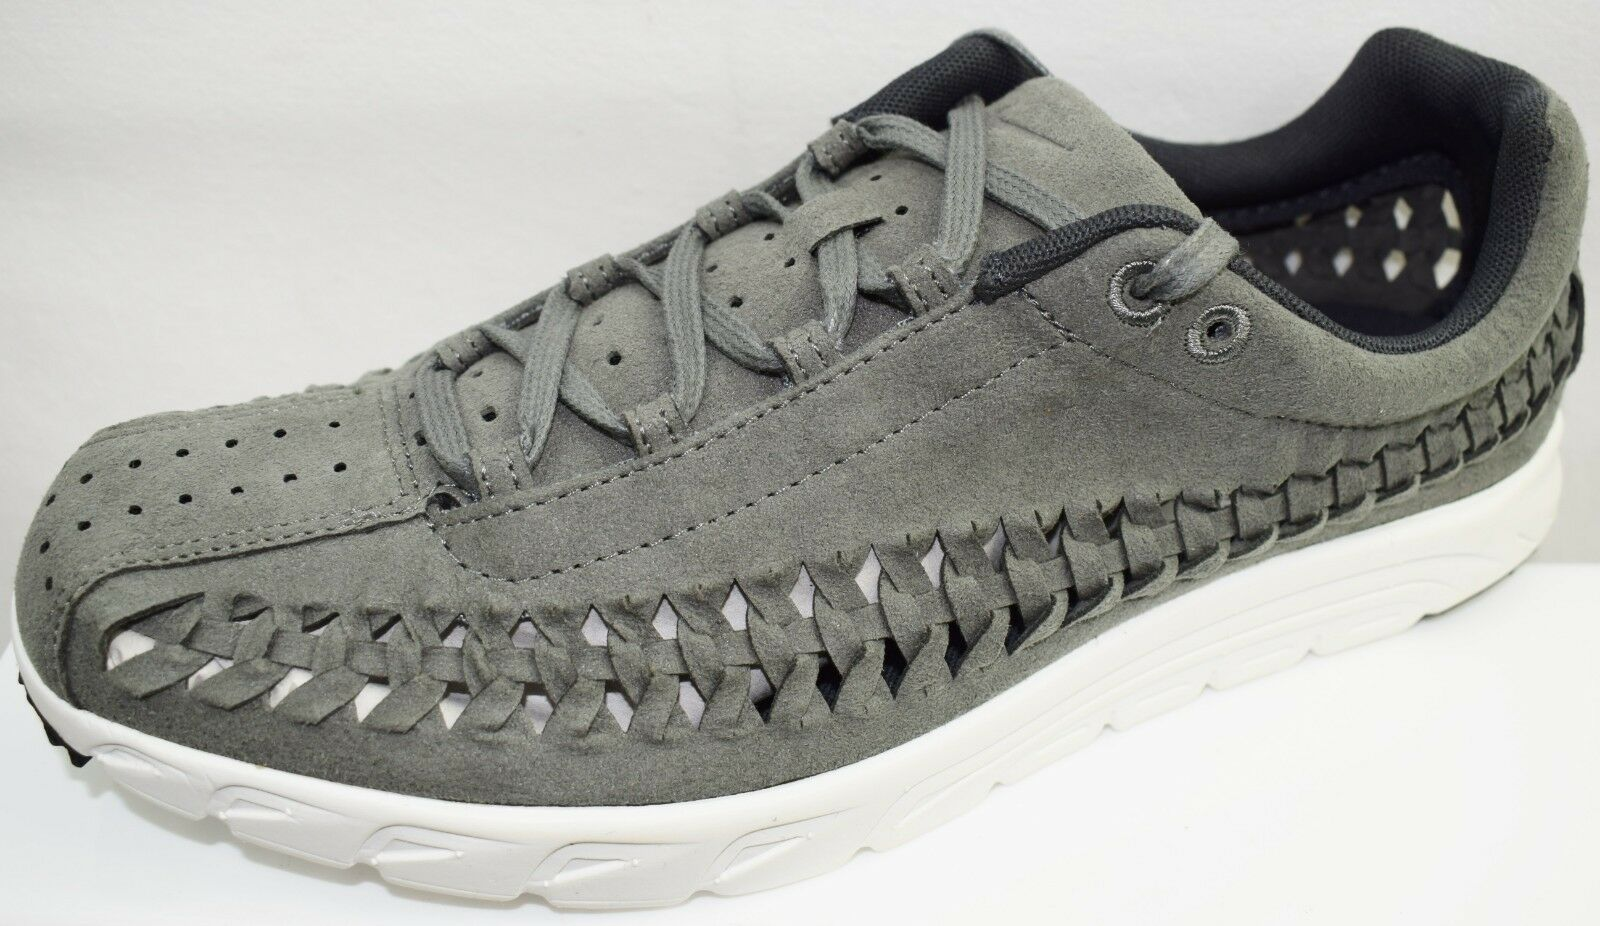 separation shoes bac7d 9a0f8 NIKE MAYFLY WOVEN Homme Baskets Neuves Taille (E010) - S S S 8c92ac ...